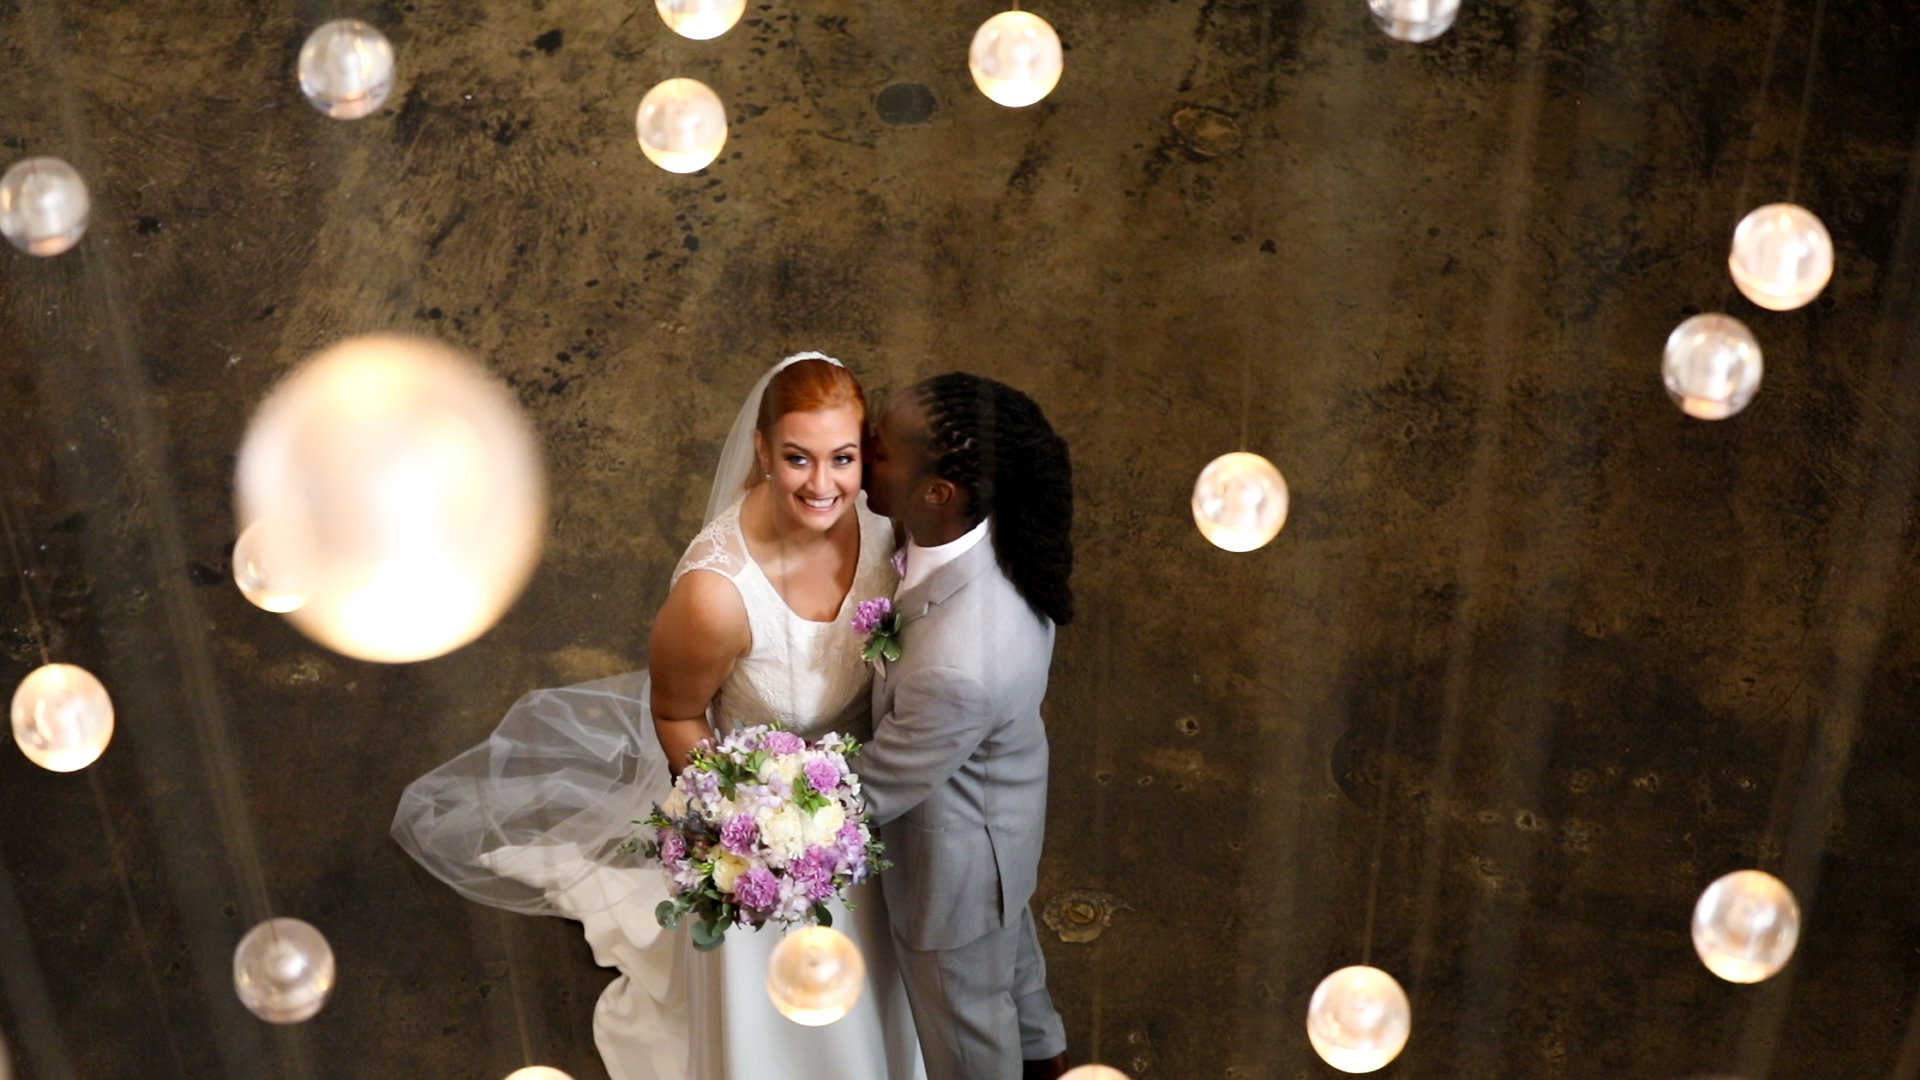 Robine and Trei's wedding at the W Hotel in Midtown, Atlanta